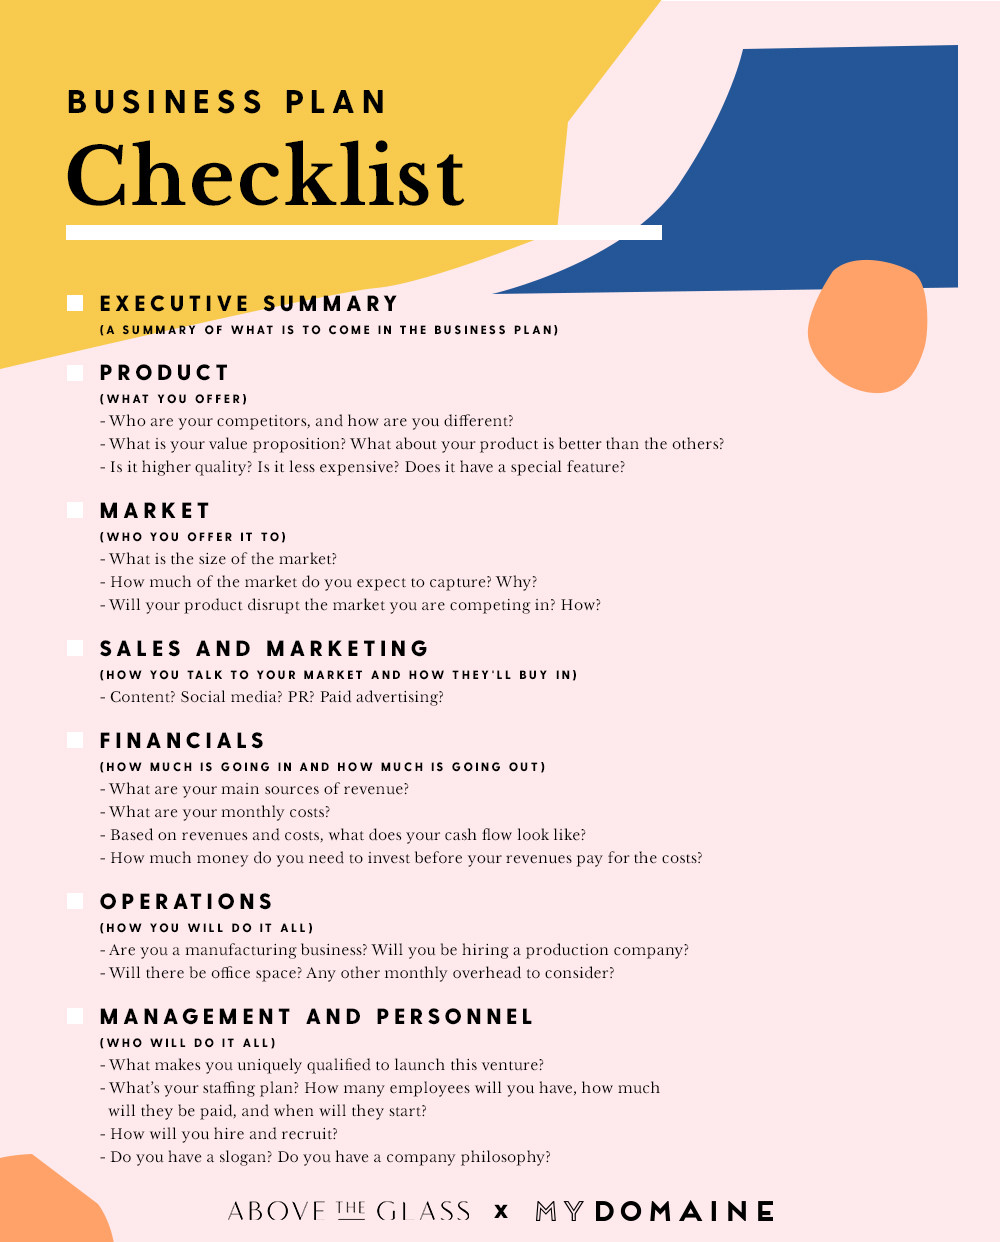 business checklist examples pdf